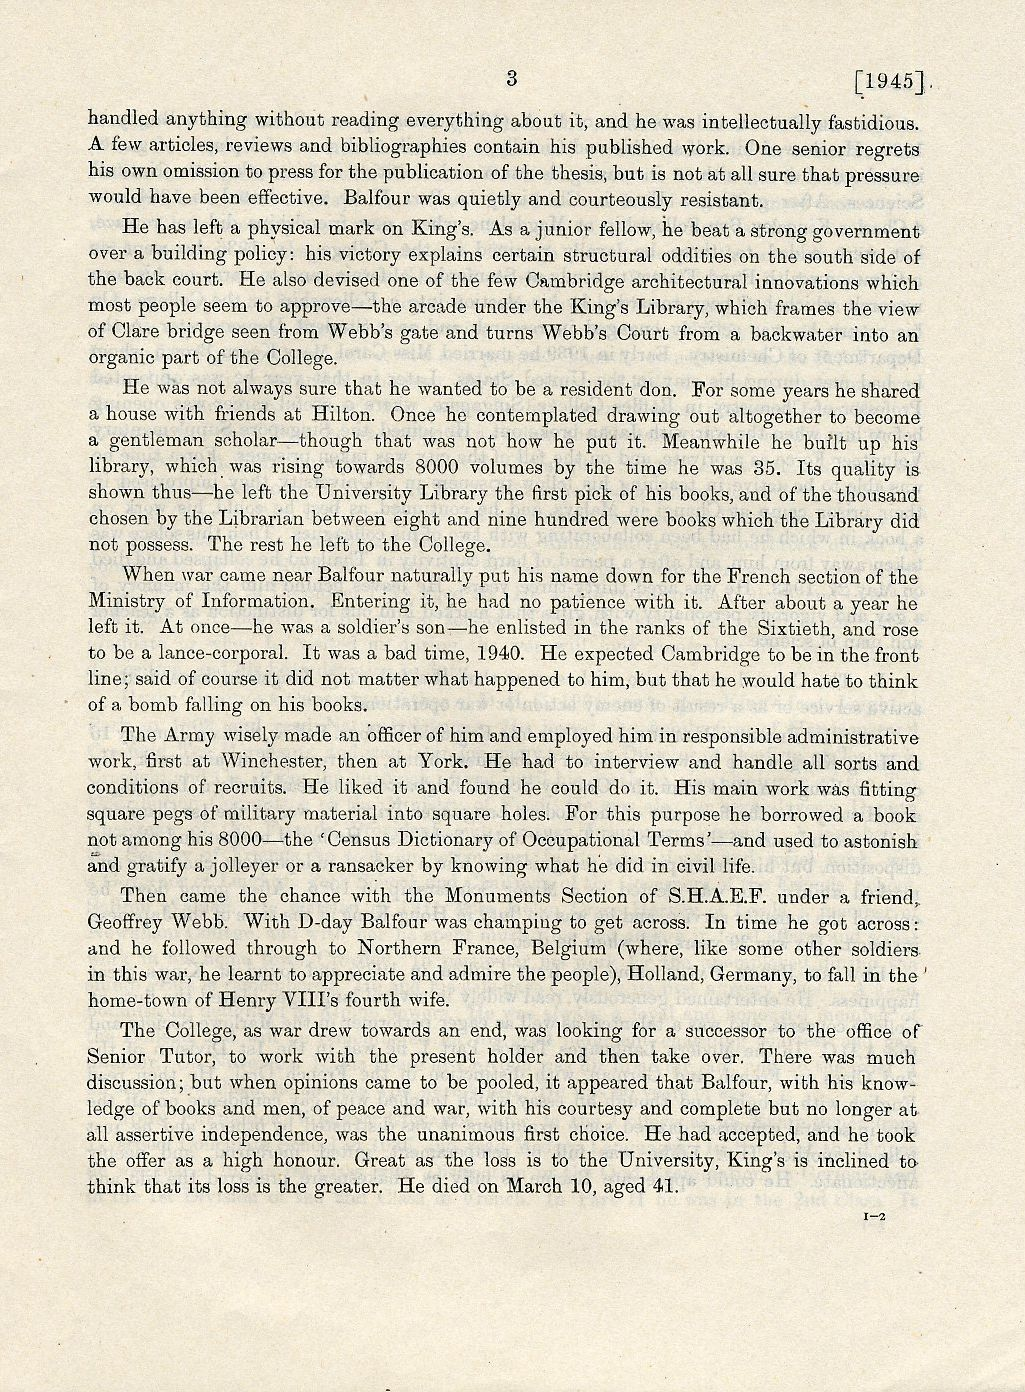 Second page of Balfour's College obituary. [Annual Report, 1945]